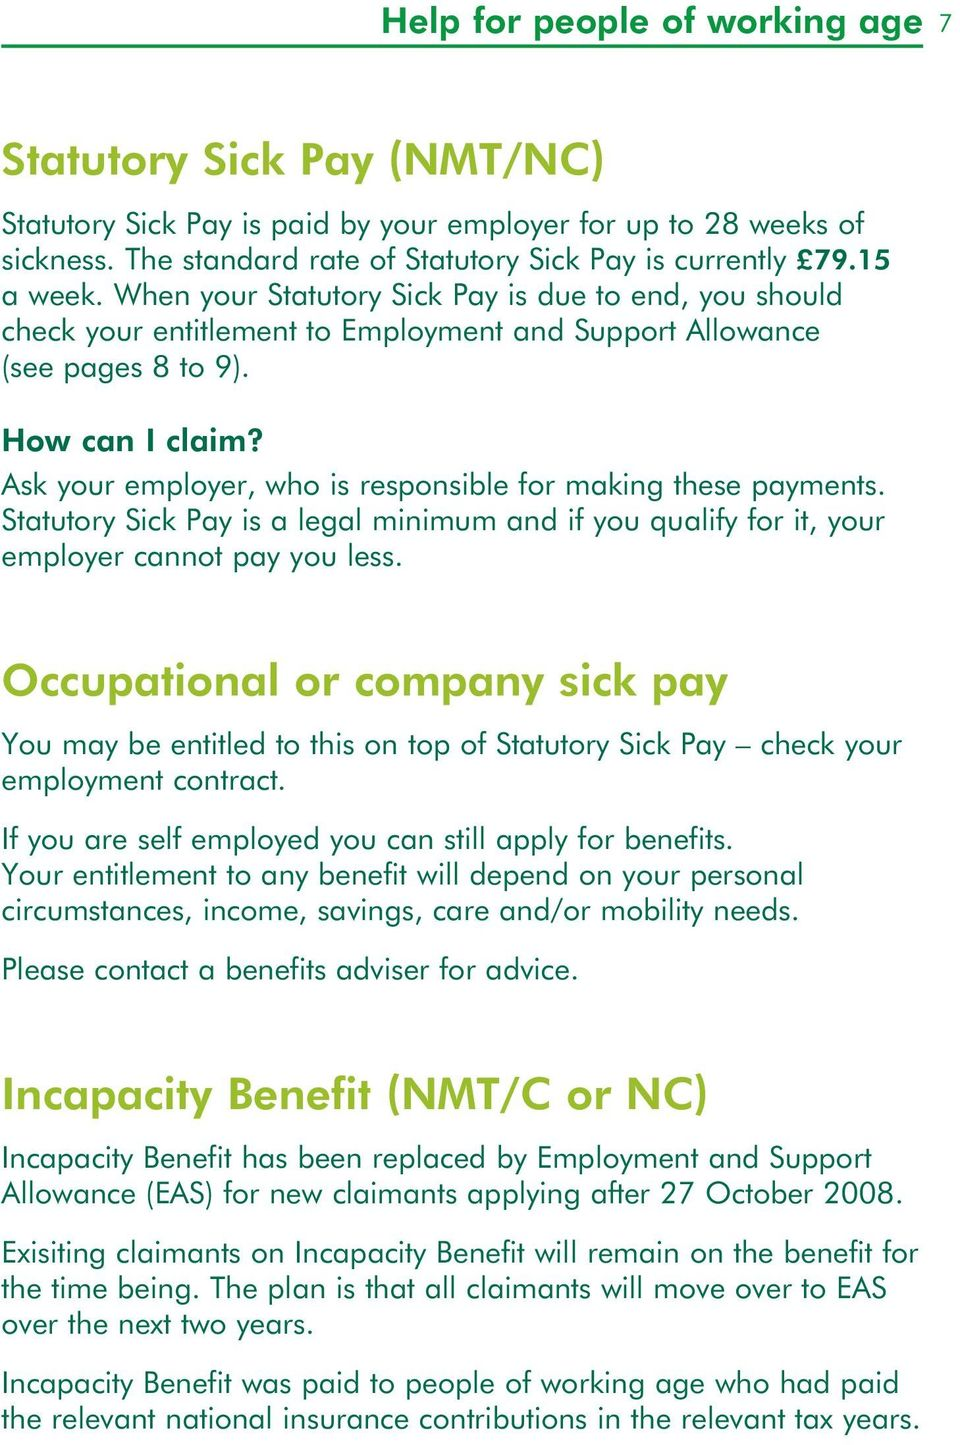 Ask your employer, who is resposible for makig these paymets. Statutory Sick Pay is a legal miimum ad if you qualify for it, your employer caot pay you less.